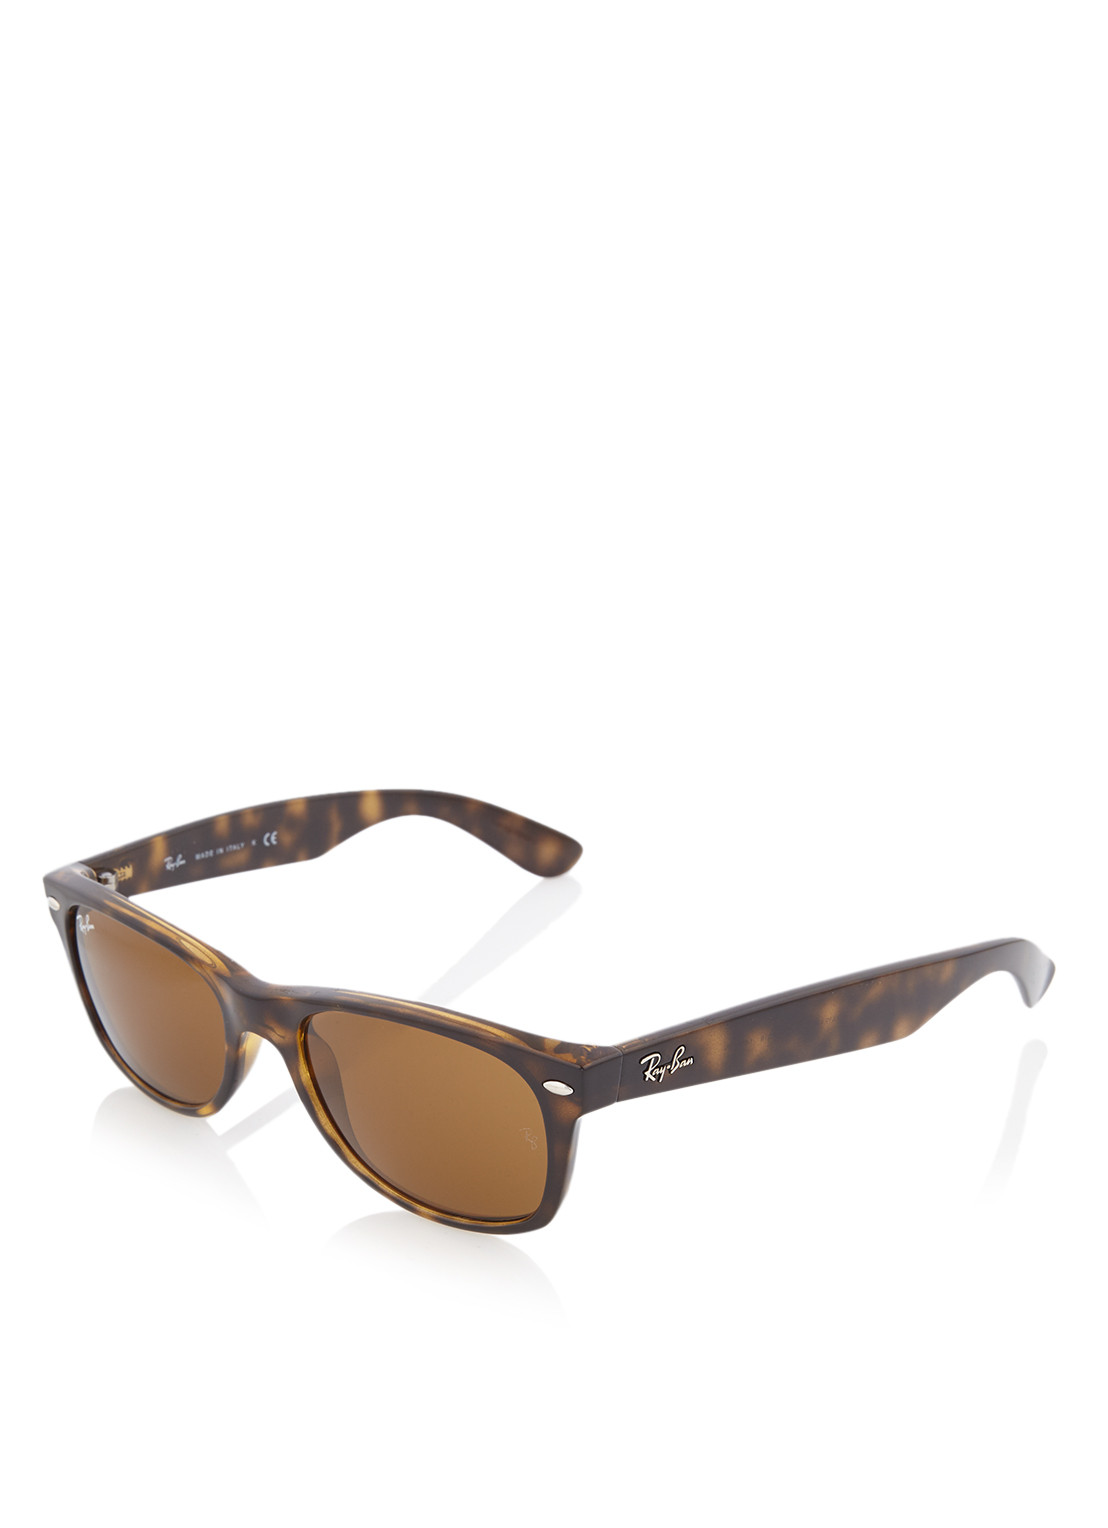 Ray Ban Zonnebril RB2132